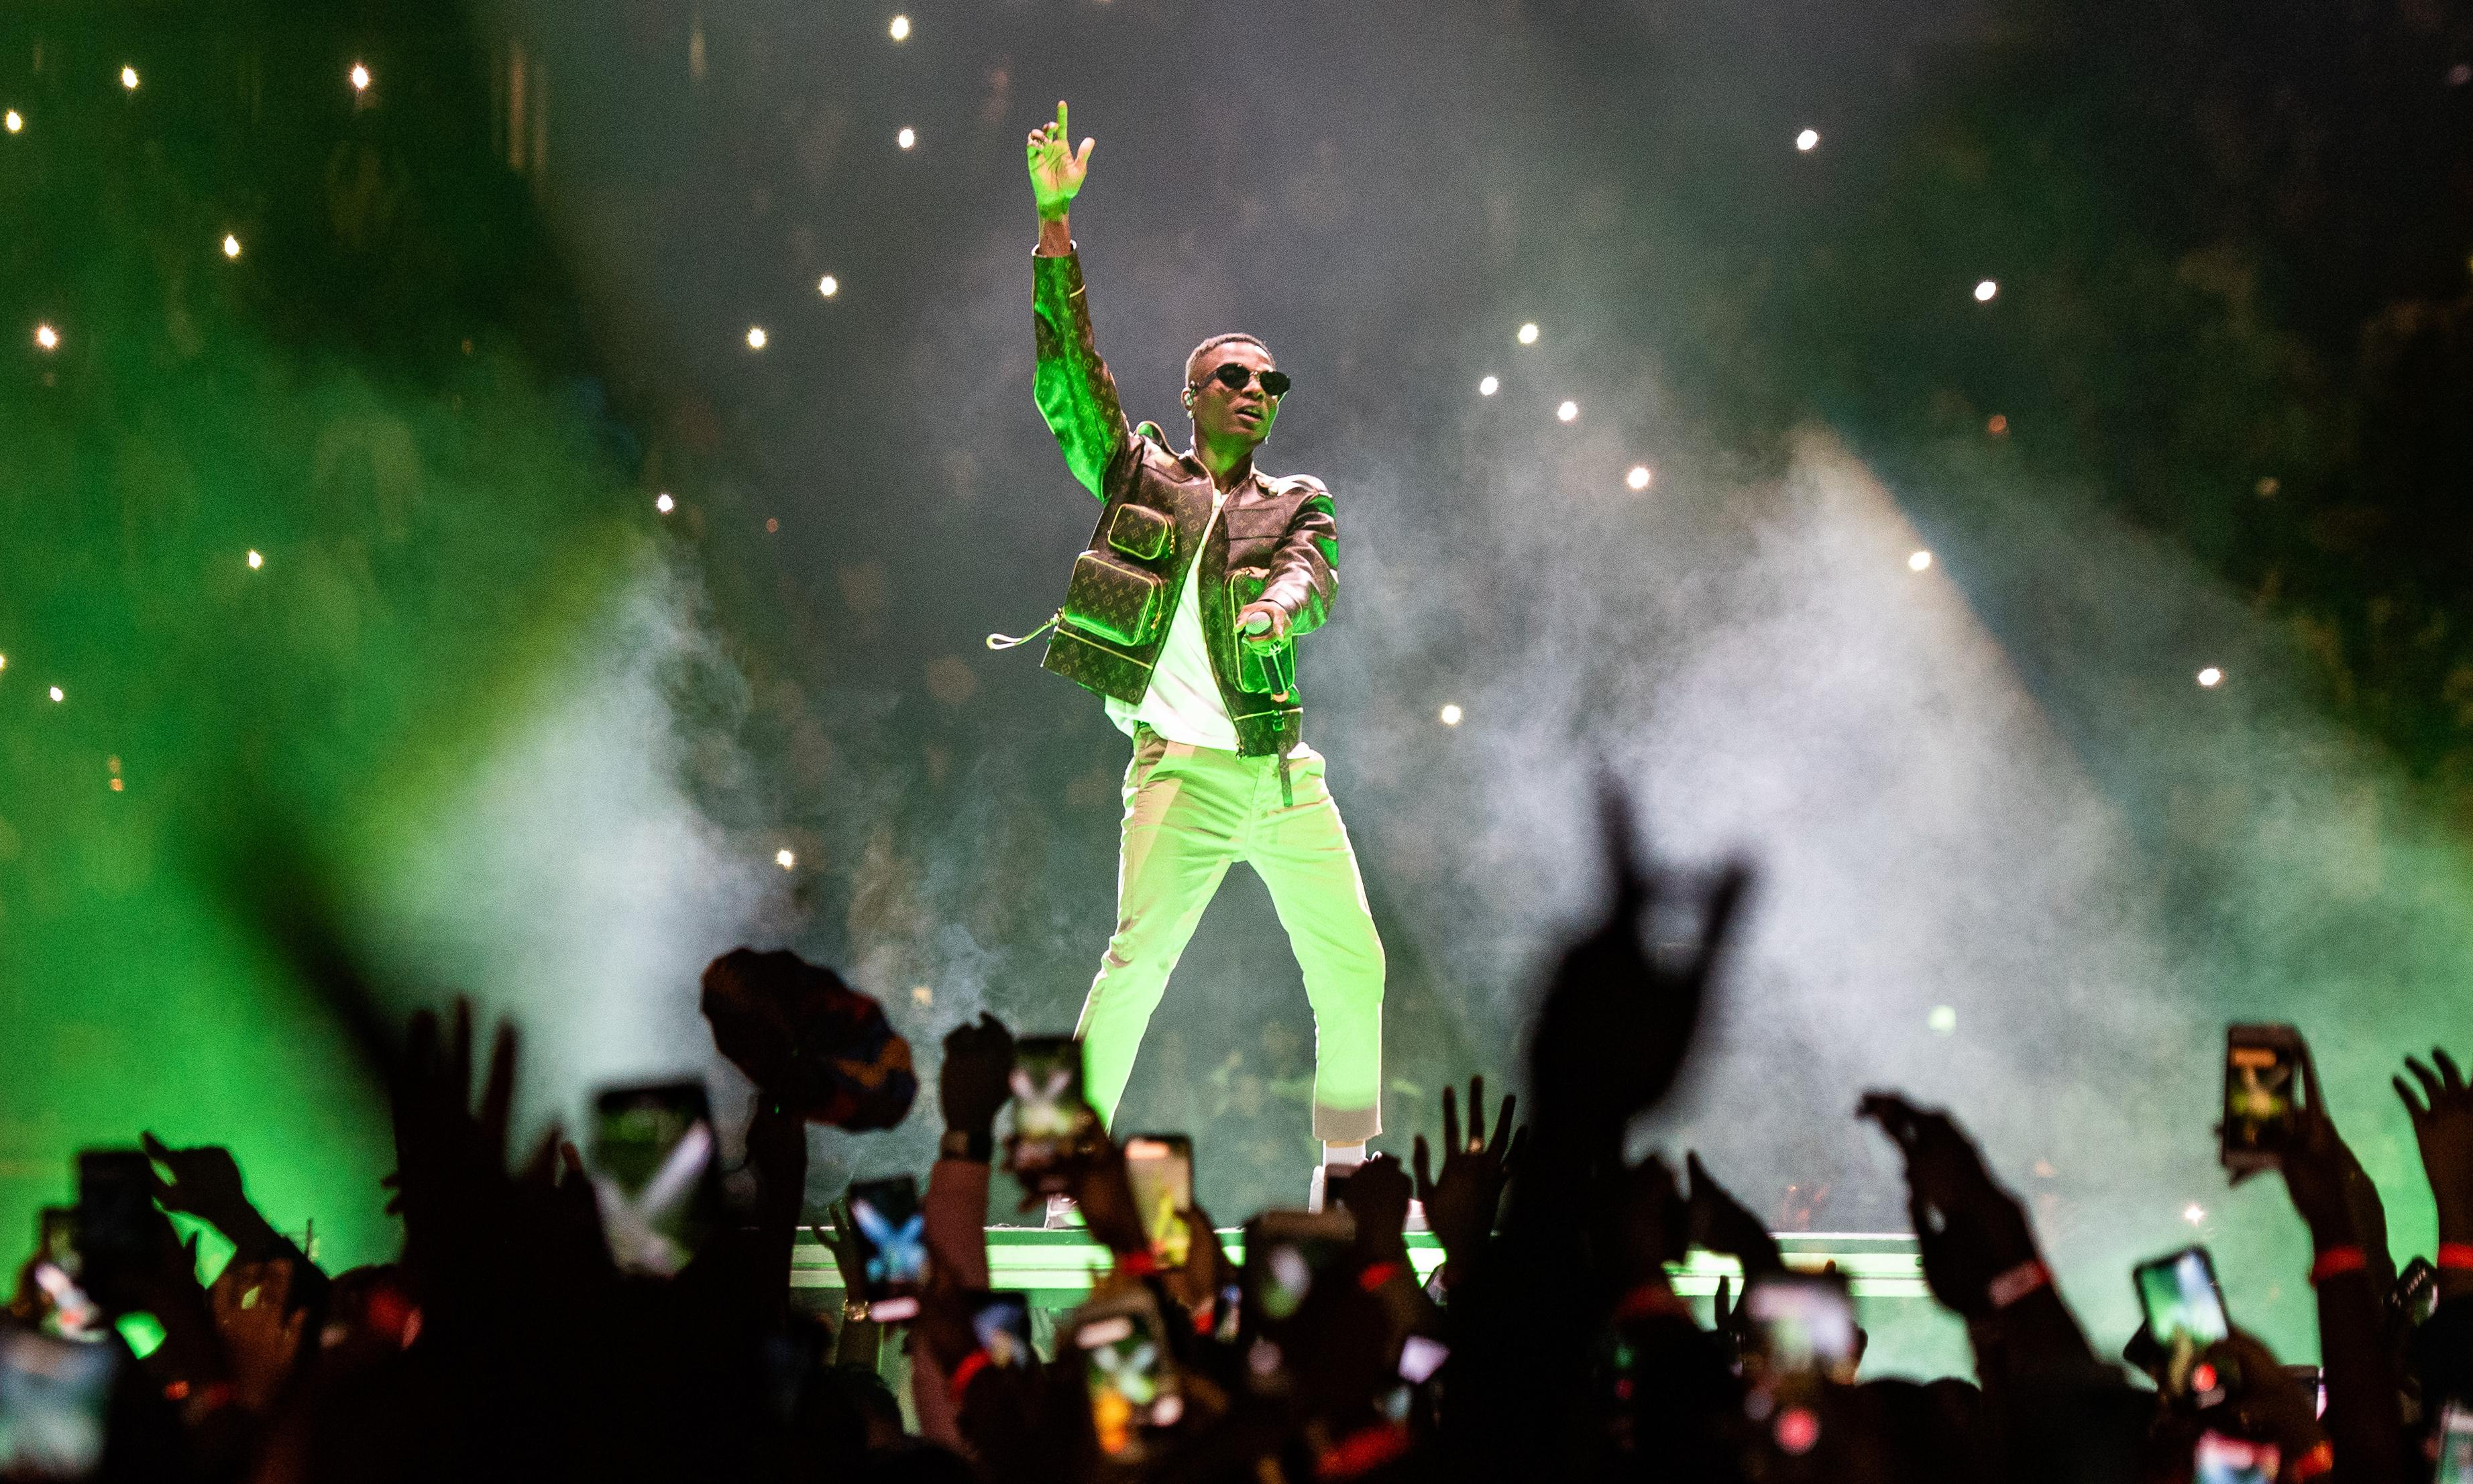 Wizkid review – Afrobeats star brings the house down